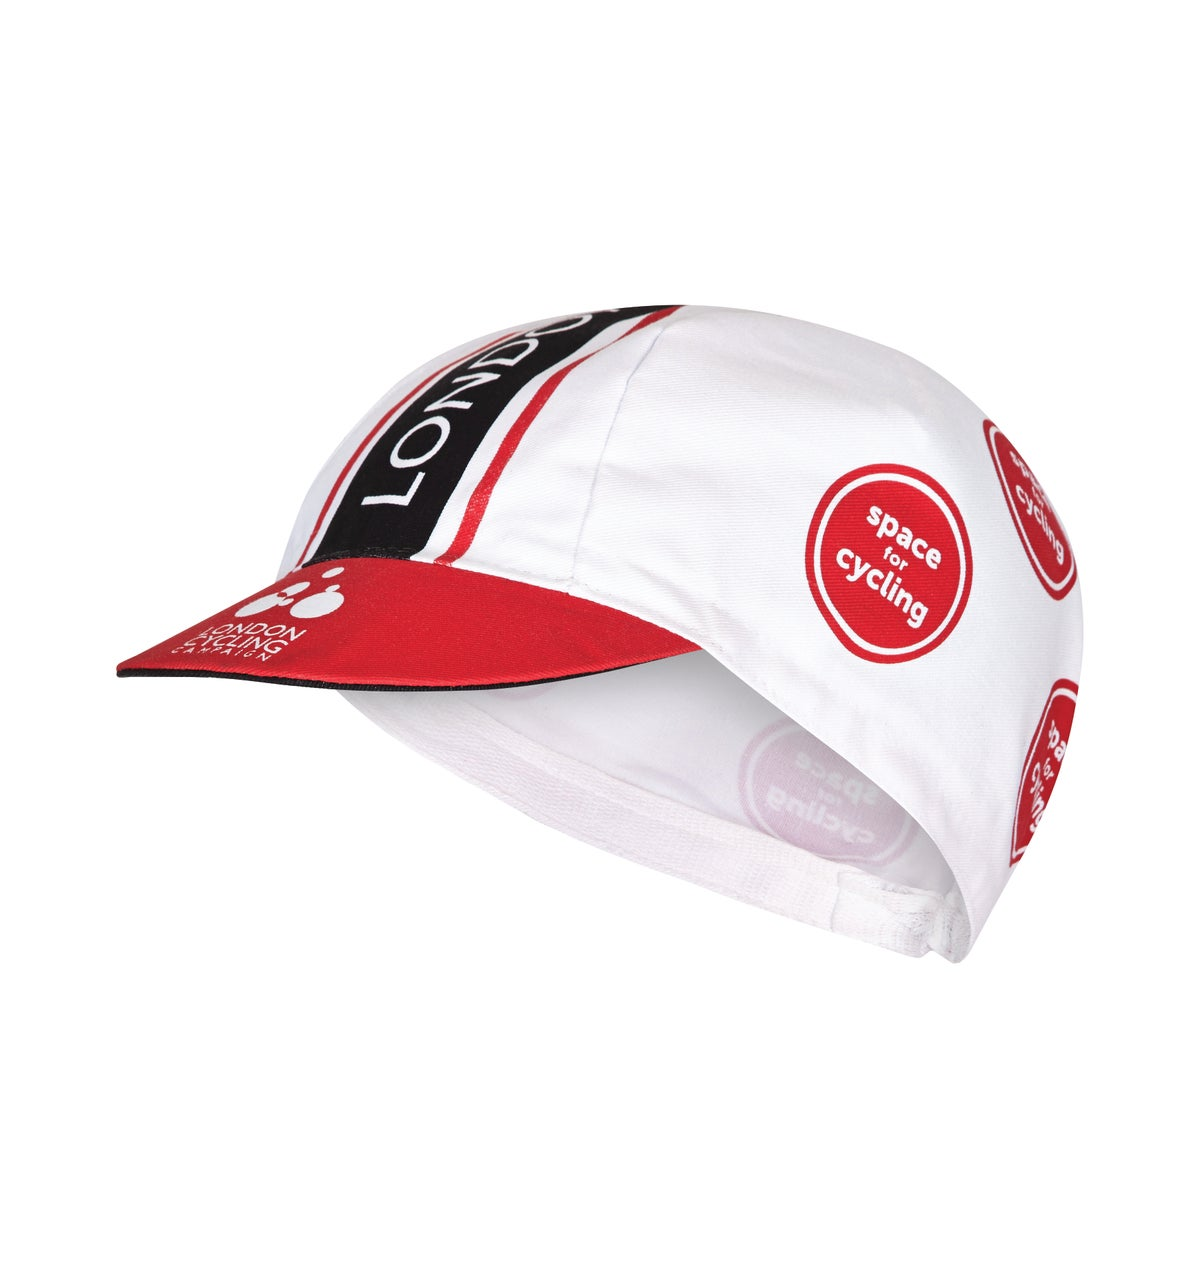 Image of London Cycling Campaign Cap